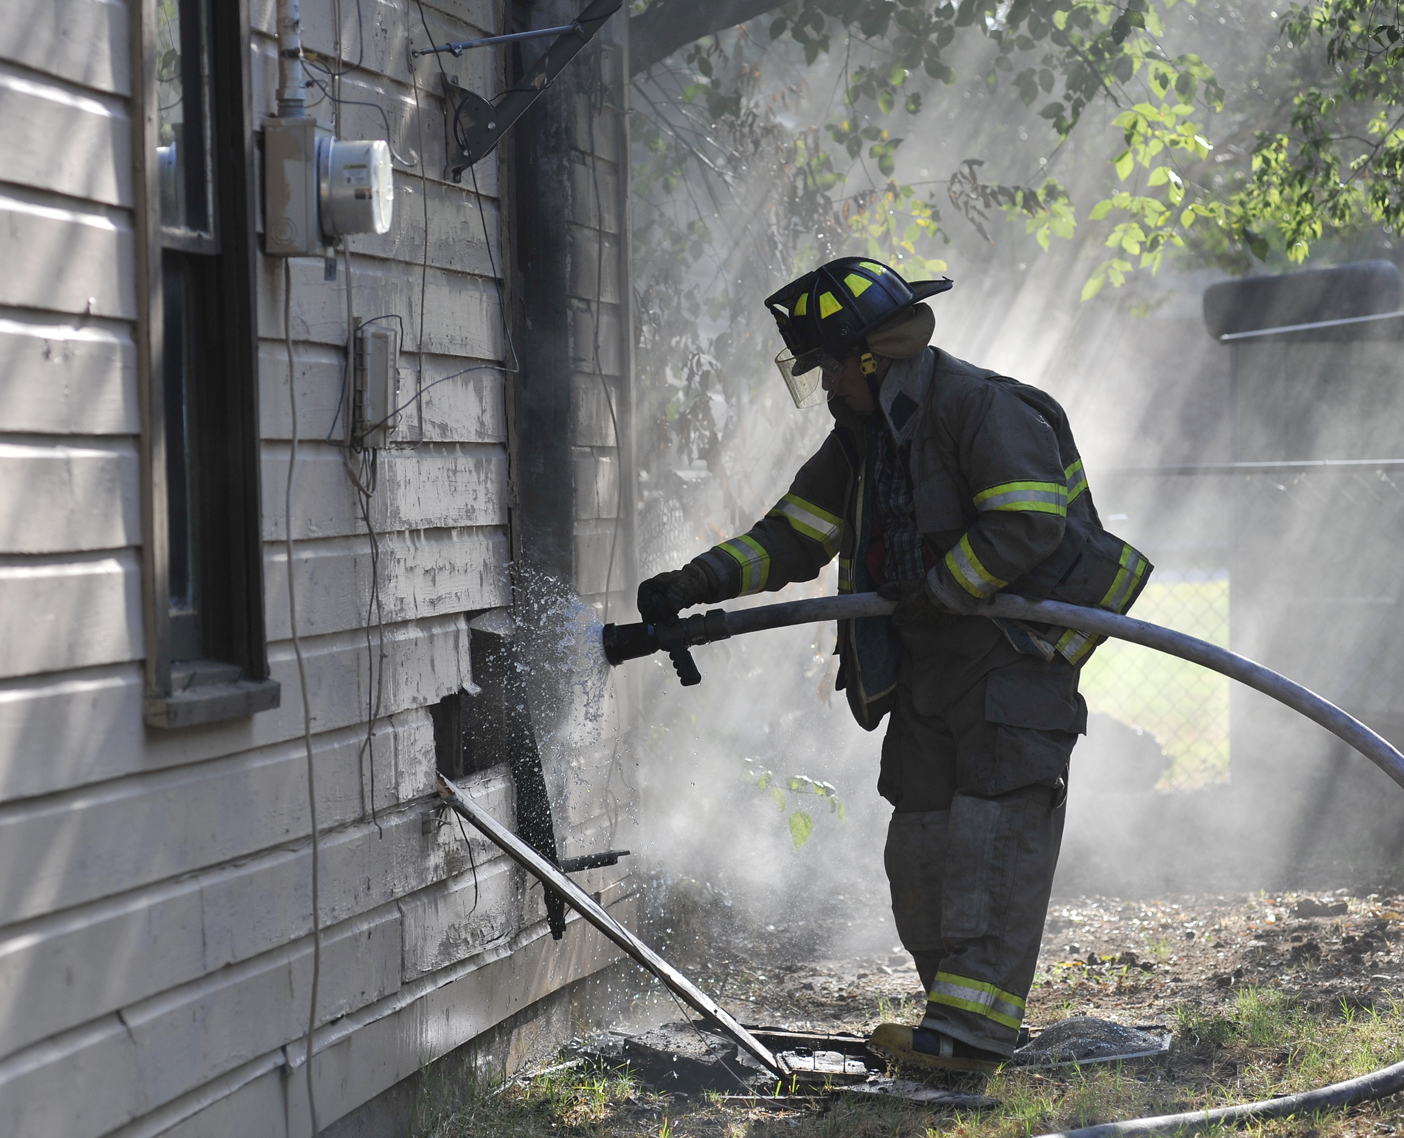 HVFD Fire Fighter Greg Borgman soaks a portion of an exterior wall that was cut away while battling a house fire in Henrietta Monday morning.